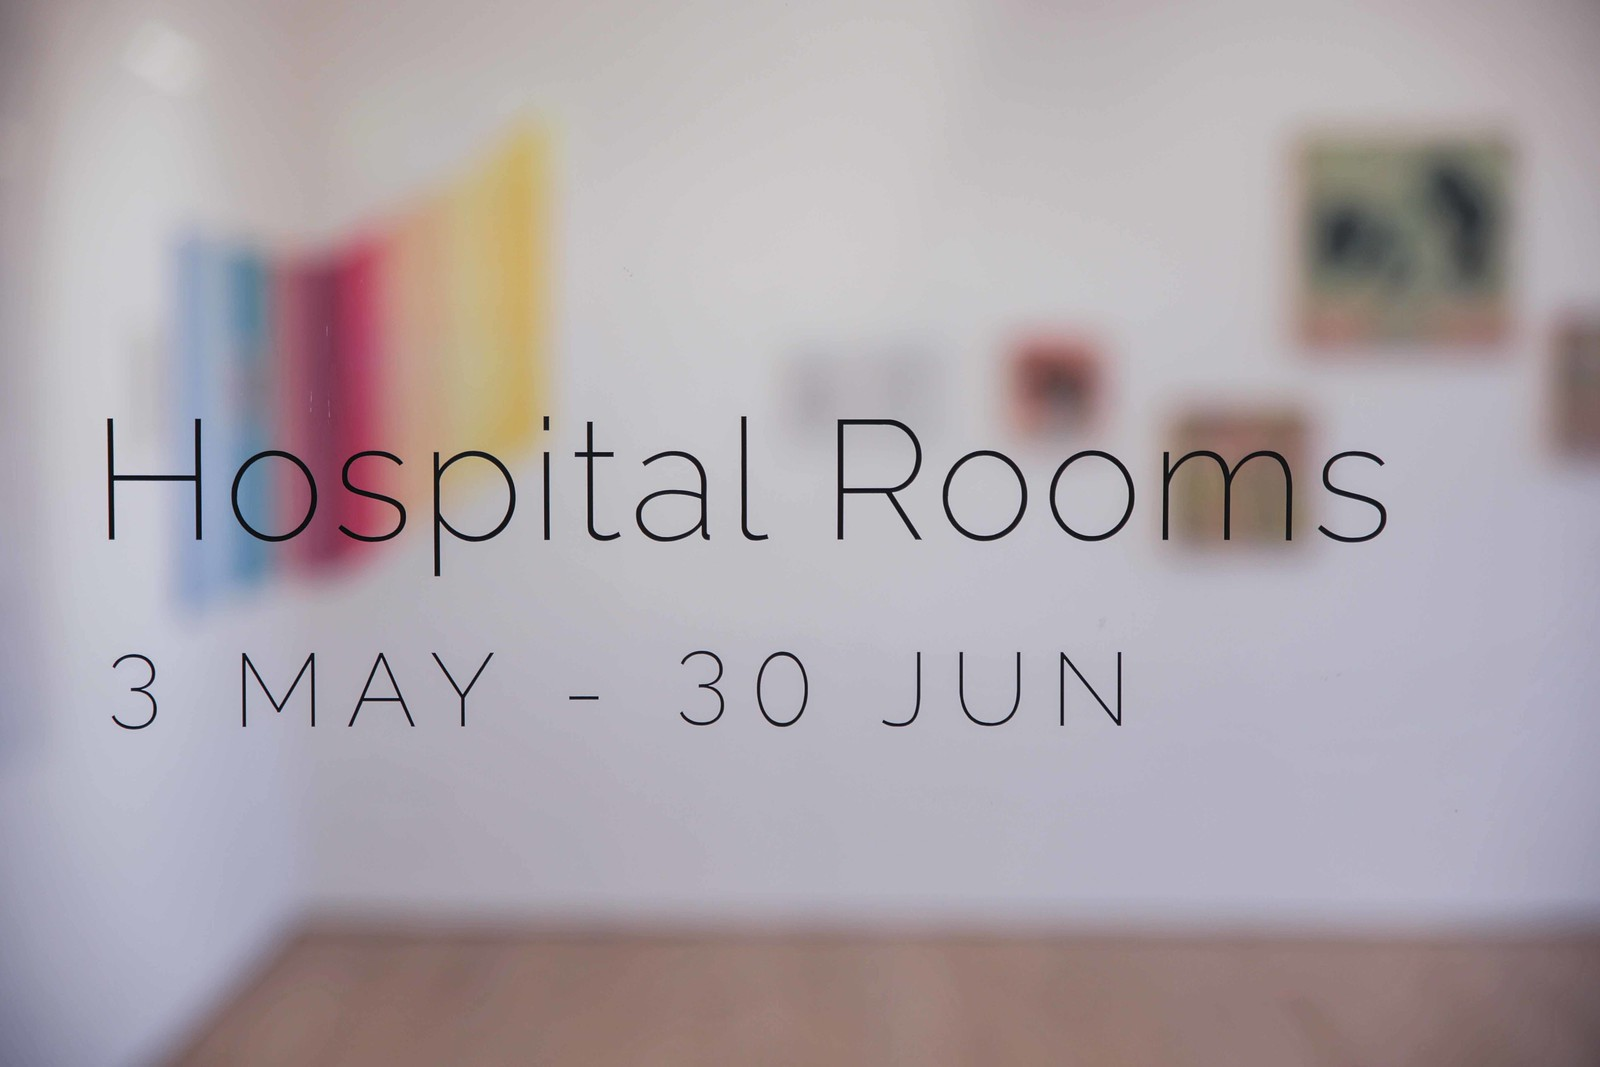 HOSPITAL ROOMS 2019